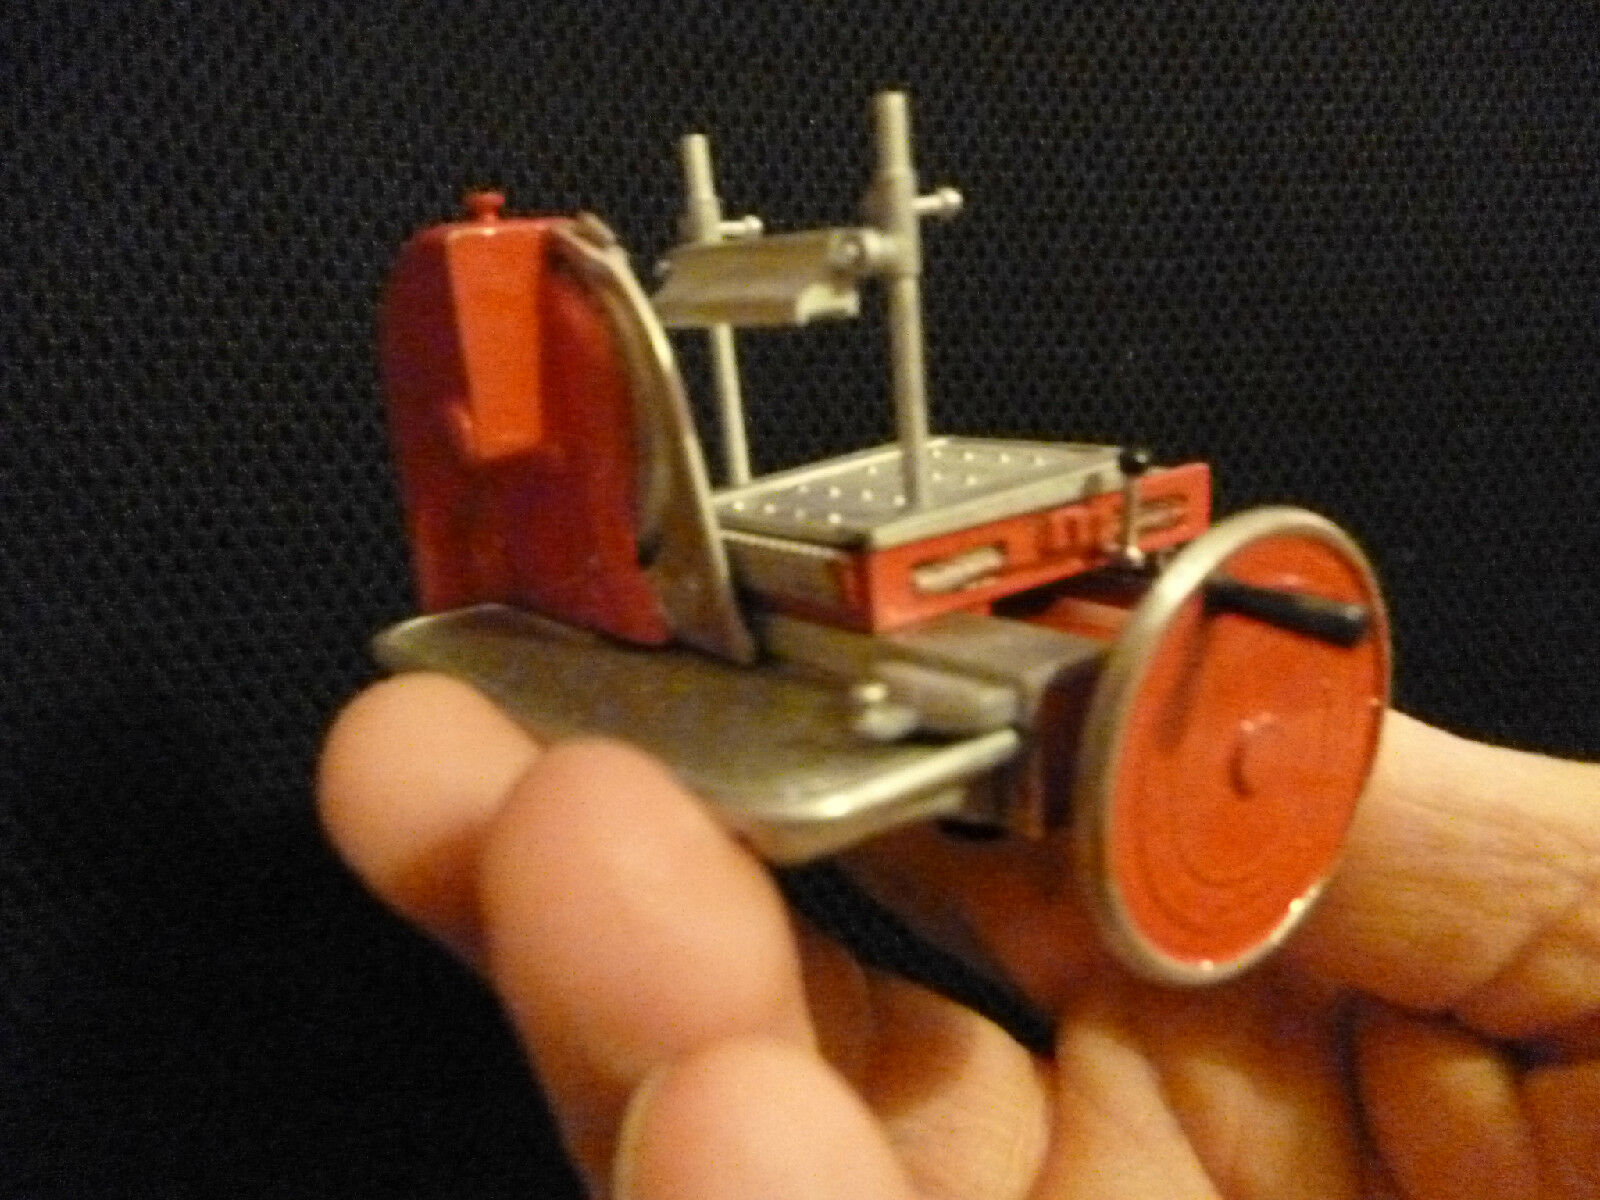 1 12 Dolls House Accessories  Bacon Slicer  DH152   Kit